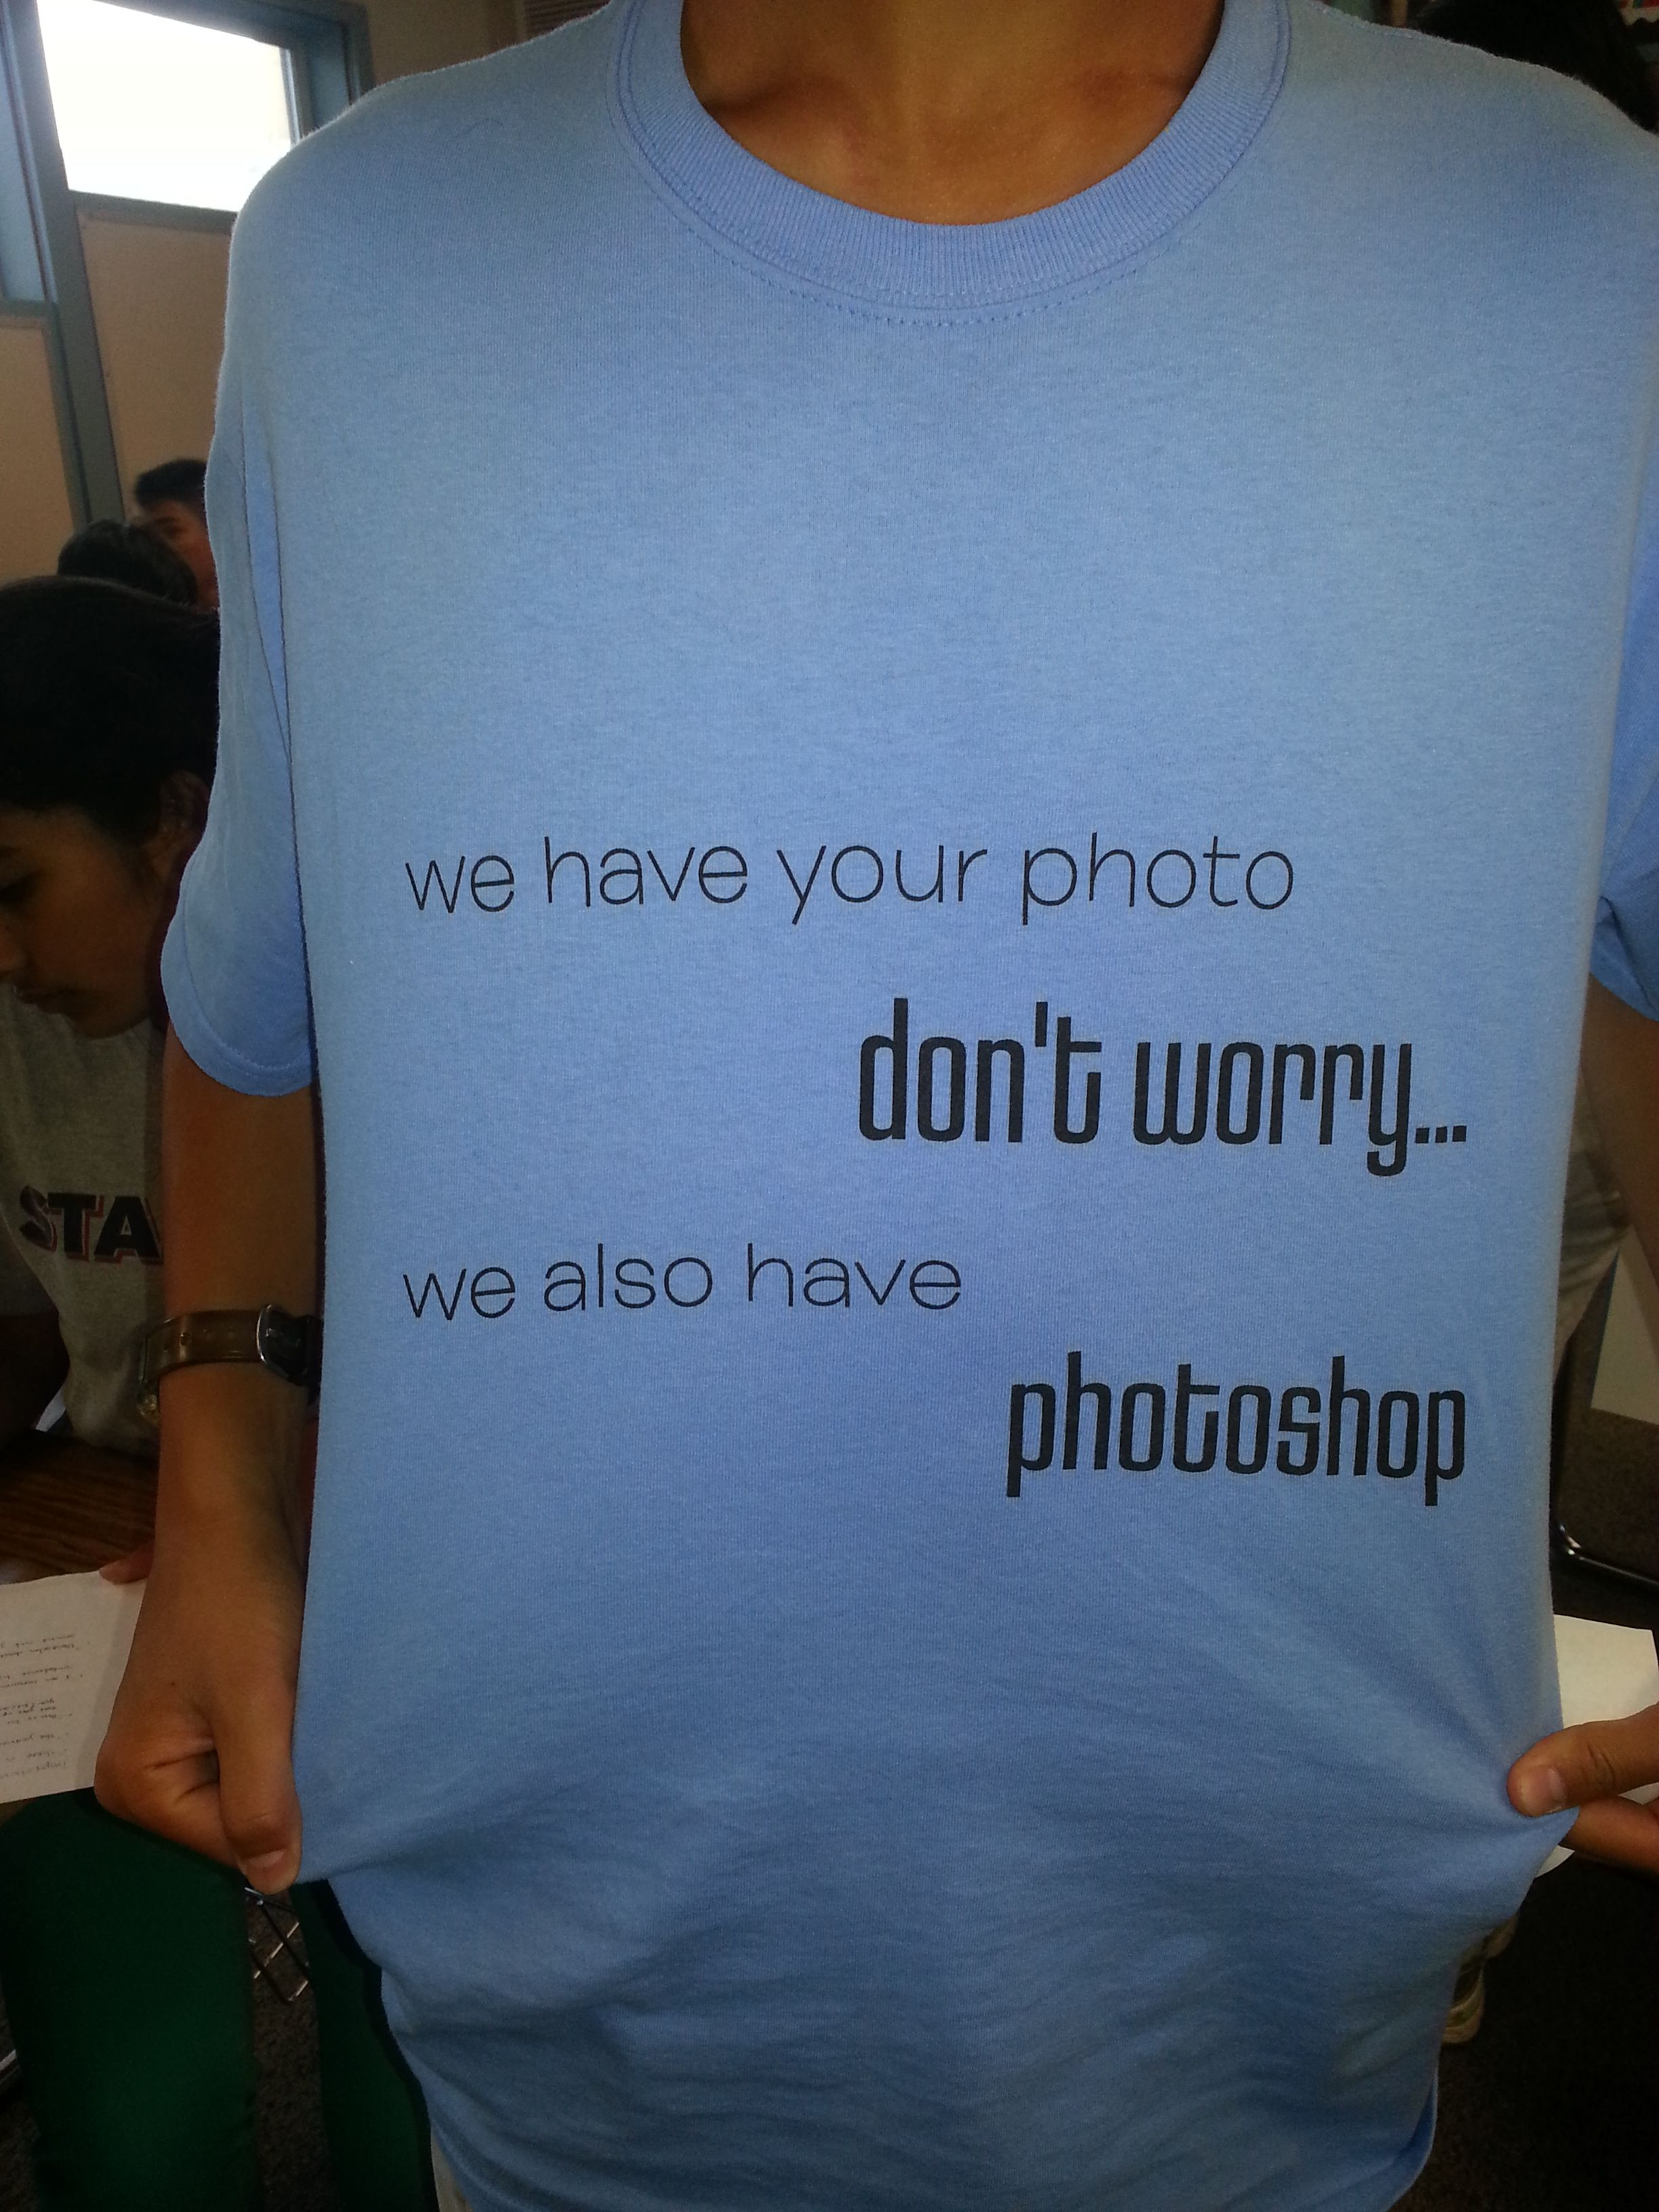 85fee5620 Another fun staff shirt with attitude. =)   Yearbook   Yearbook ...